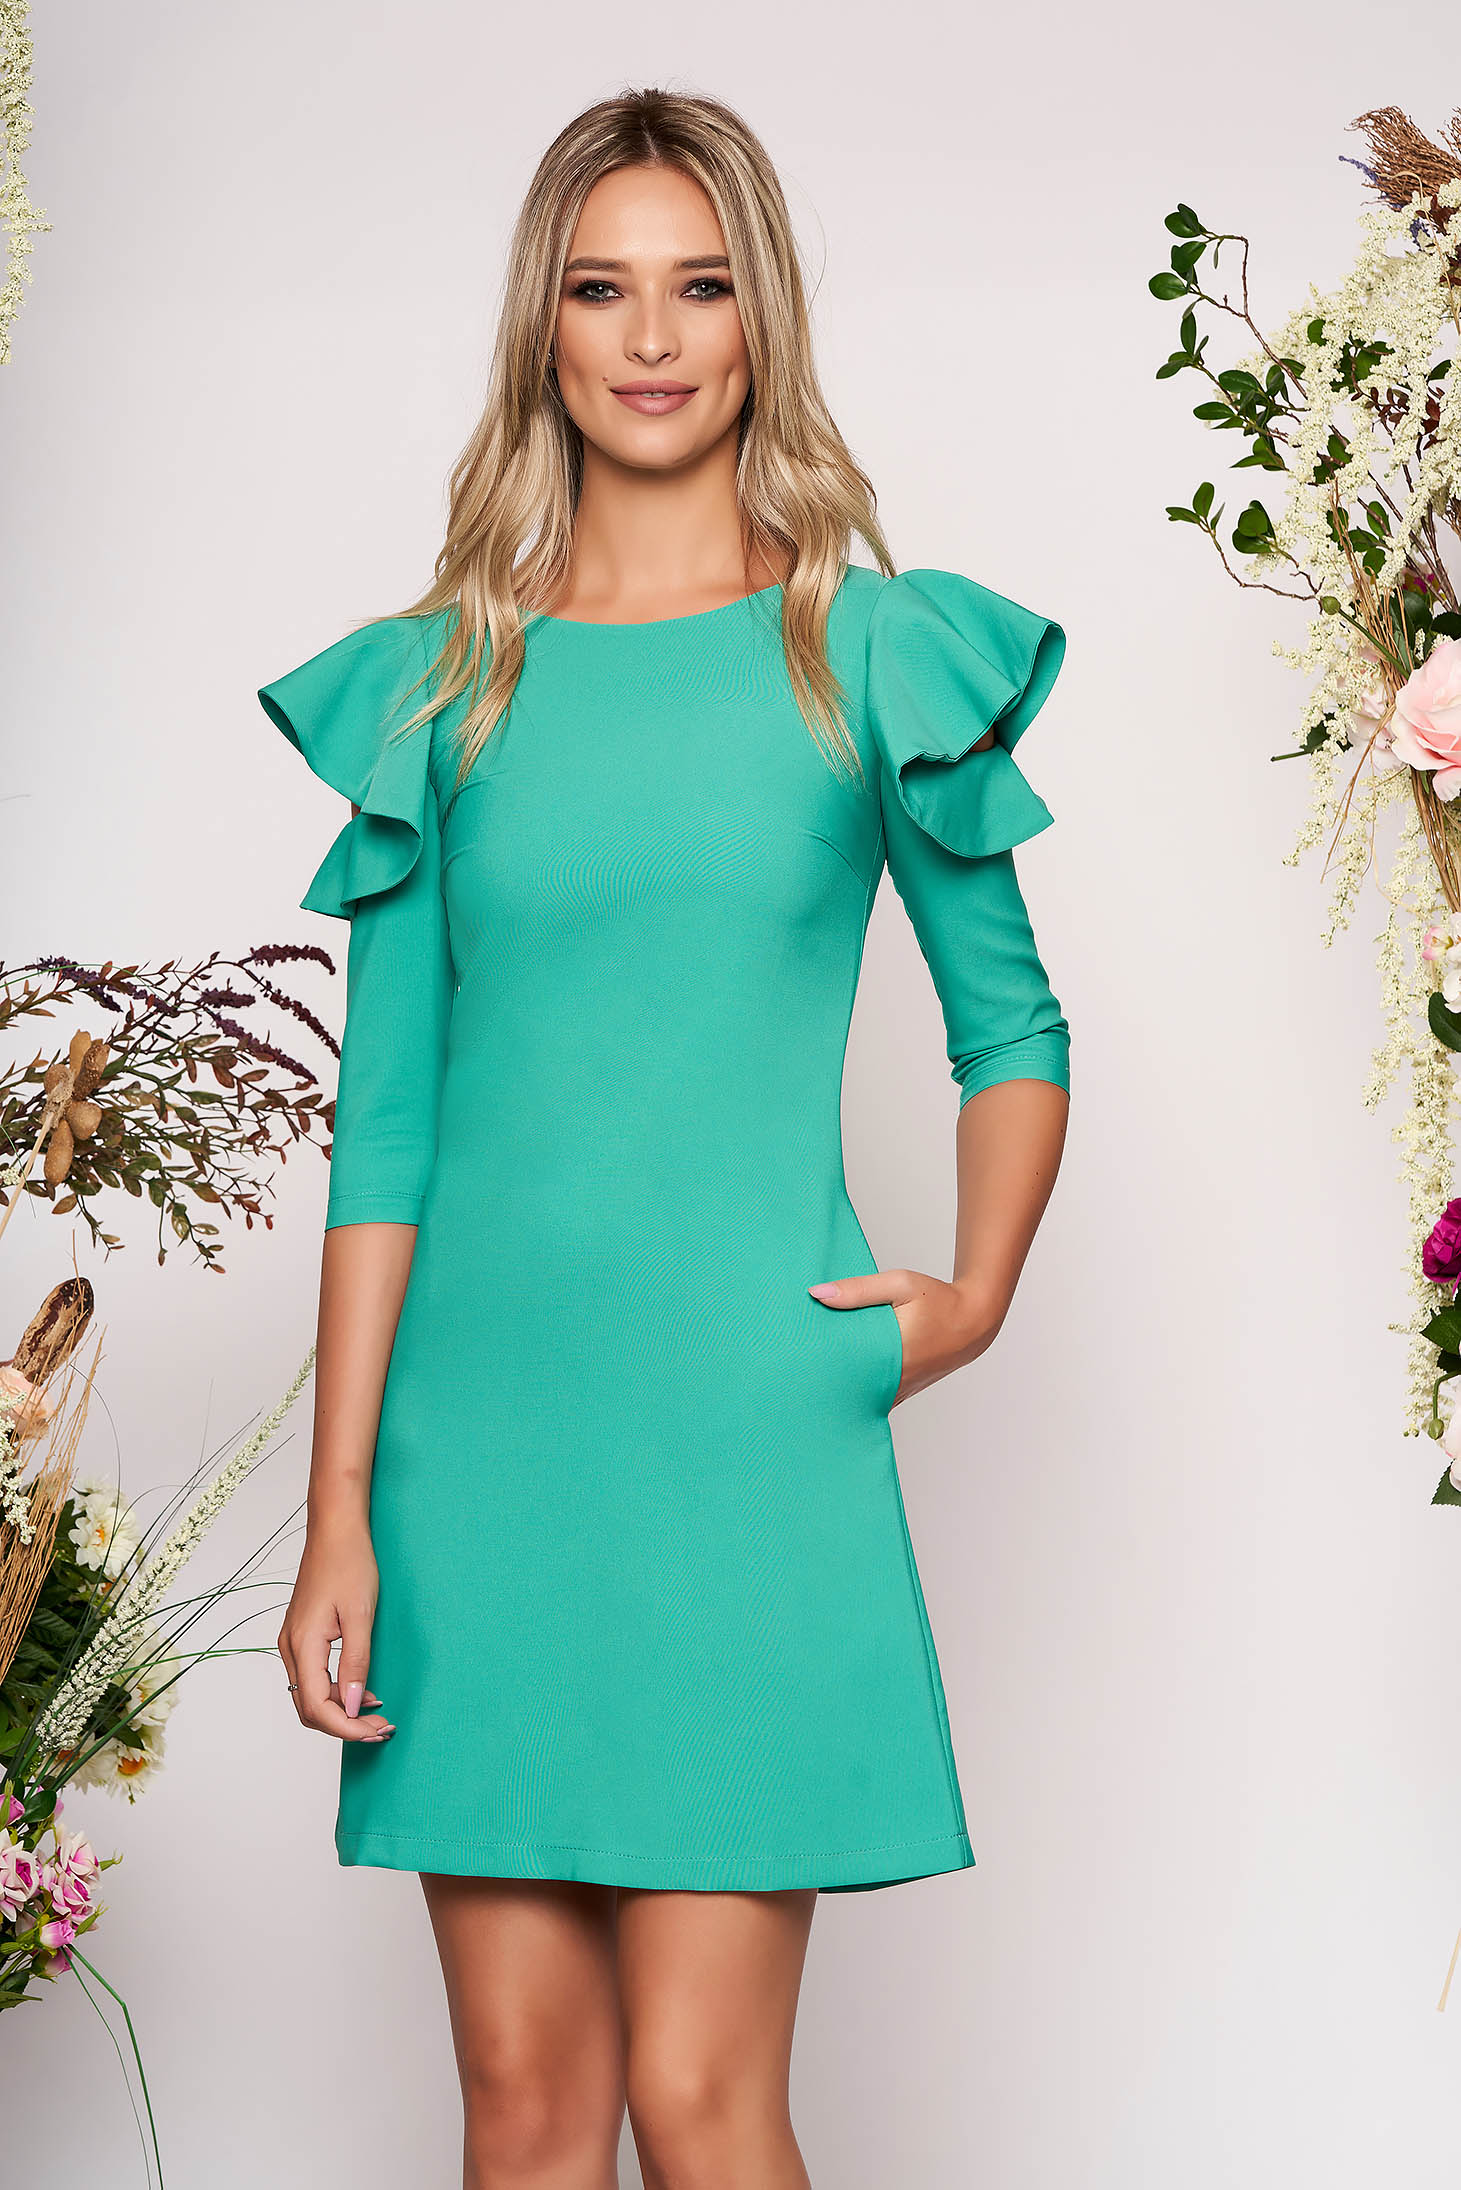 Green daily elegant a-line dress slightly elastic fabric with ruffled sleeves